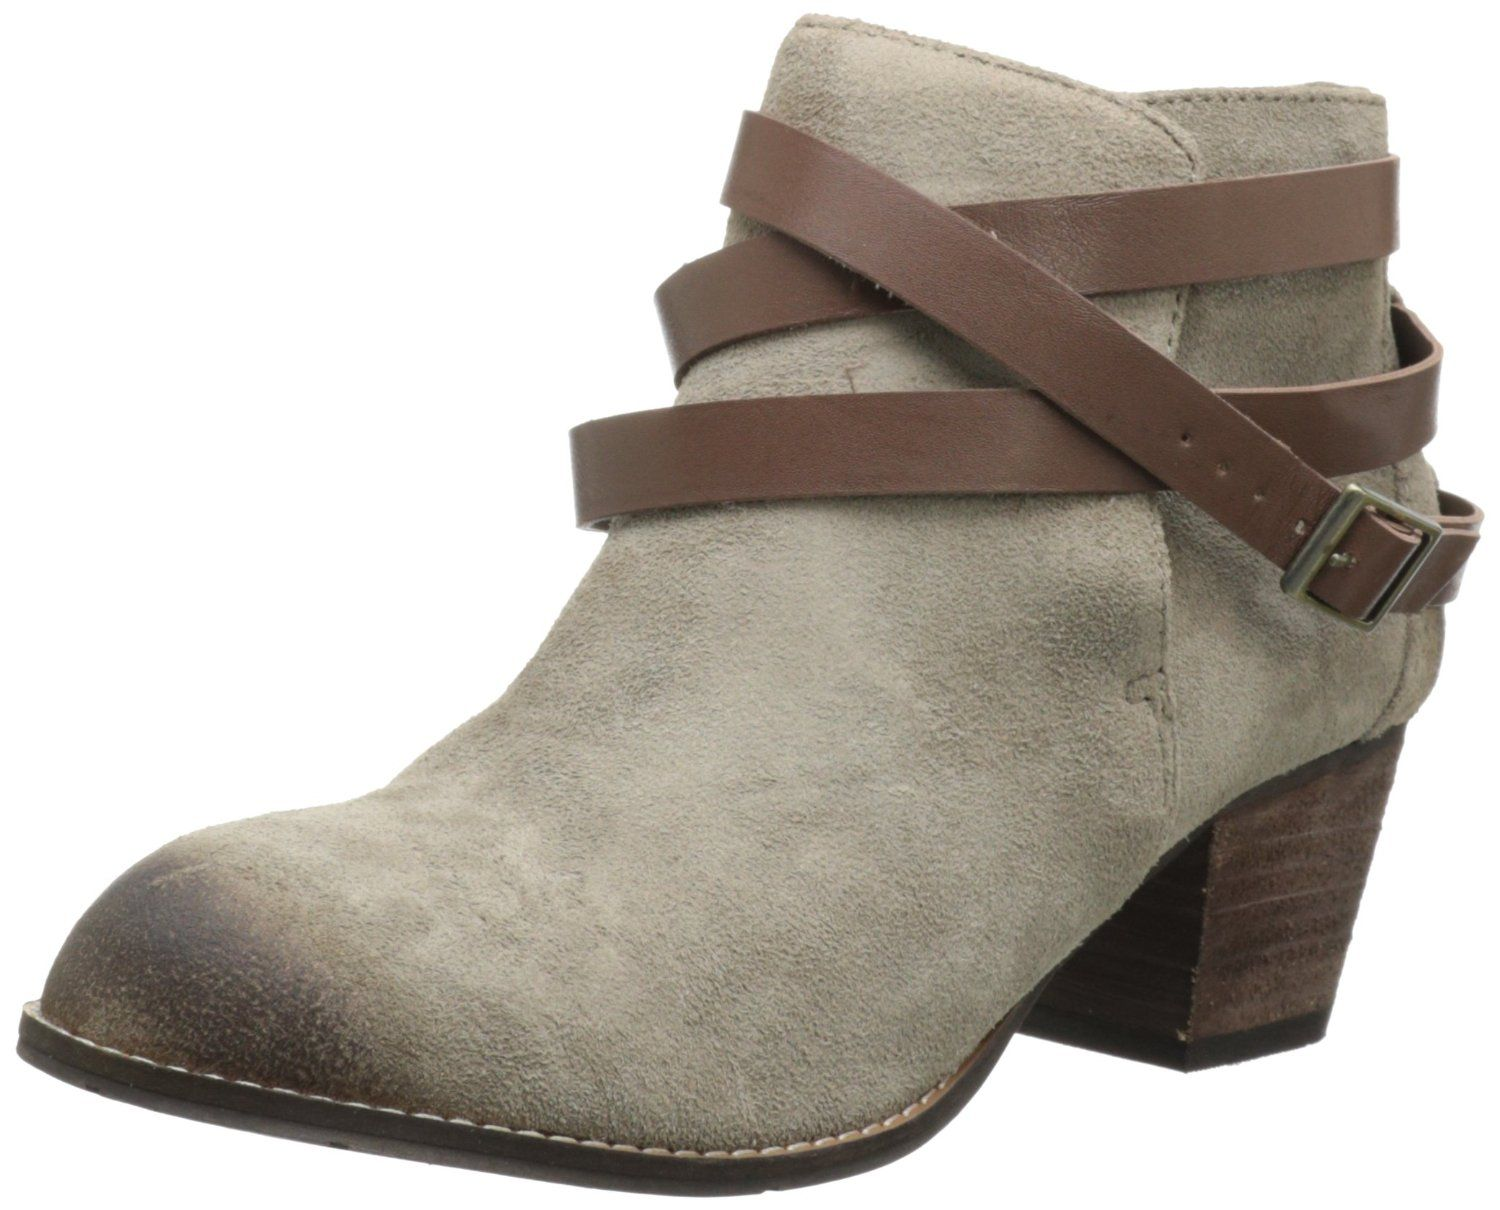 Amazon.com: DV by Dolce Vita Women's Java Ankle Boot: Shoes $71.73